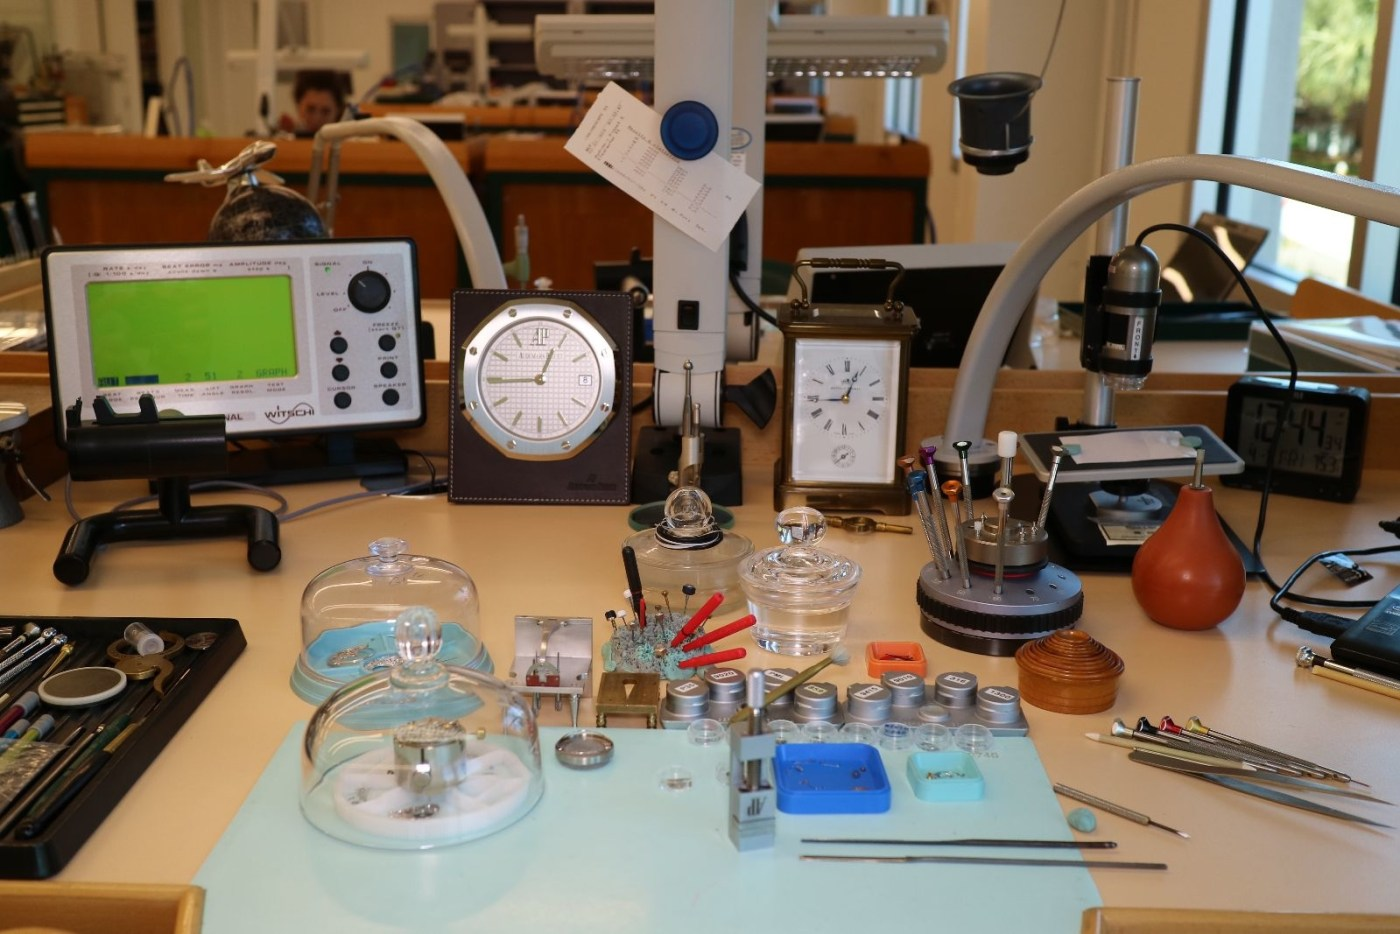 High complication watchmaker's bench